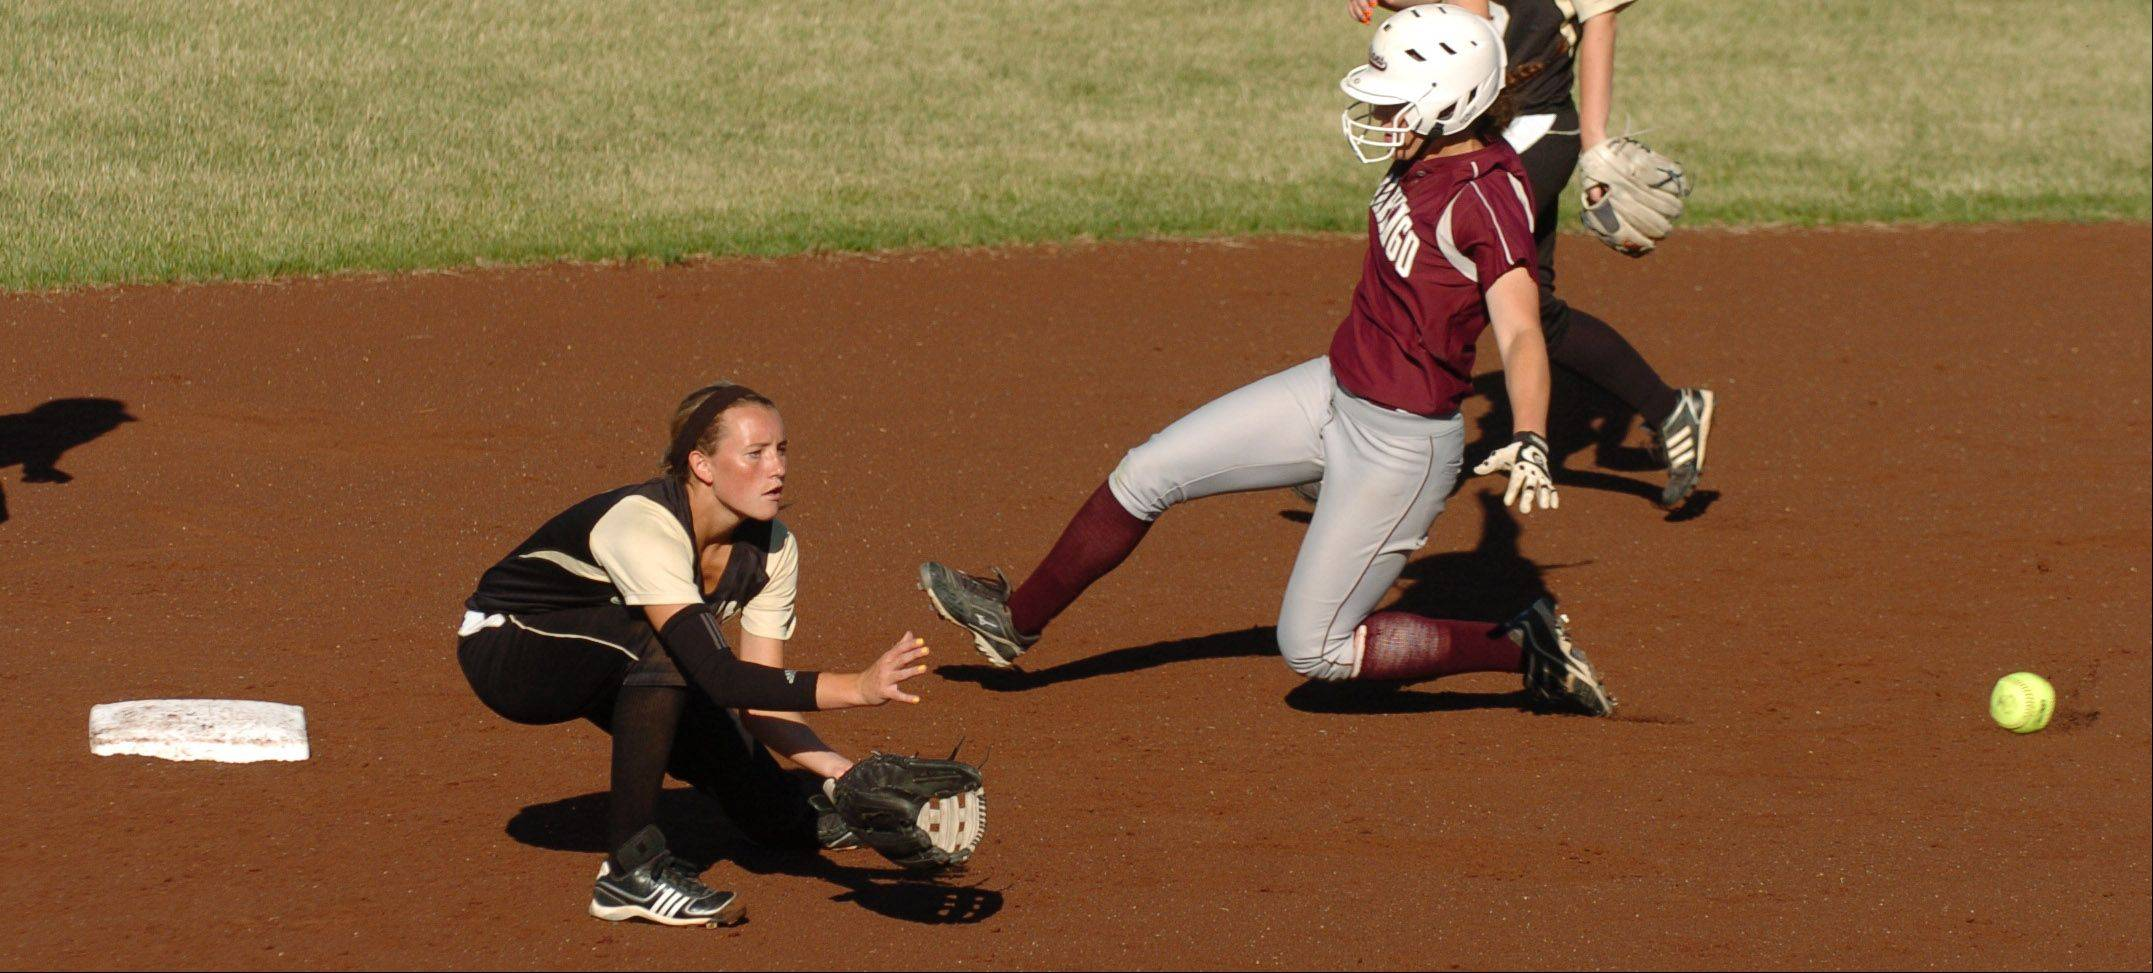 Jordyn Bowen of Grayslake North catches the ball at second base as Abby Kissack of Marengo slides in safely during Class 3A supersectional play in DeKalb.